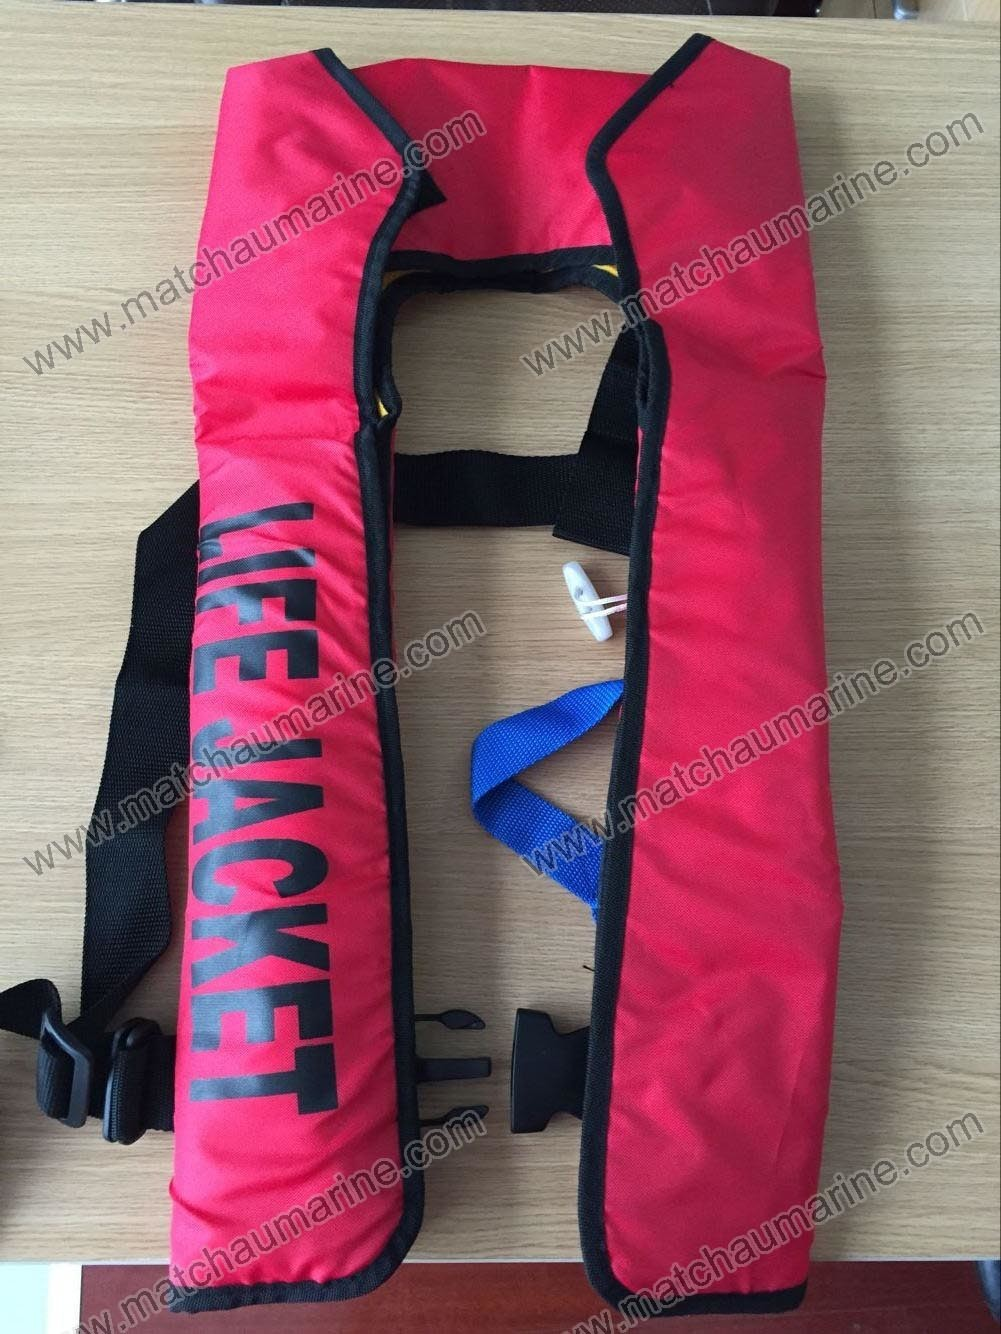 150n Automatic and Manual Inflatable Life Safety Vest